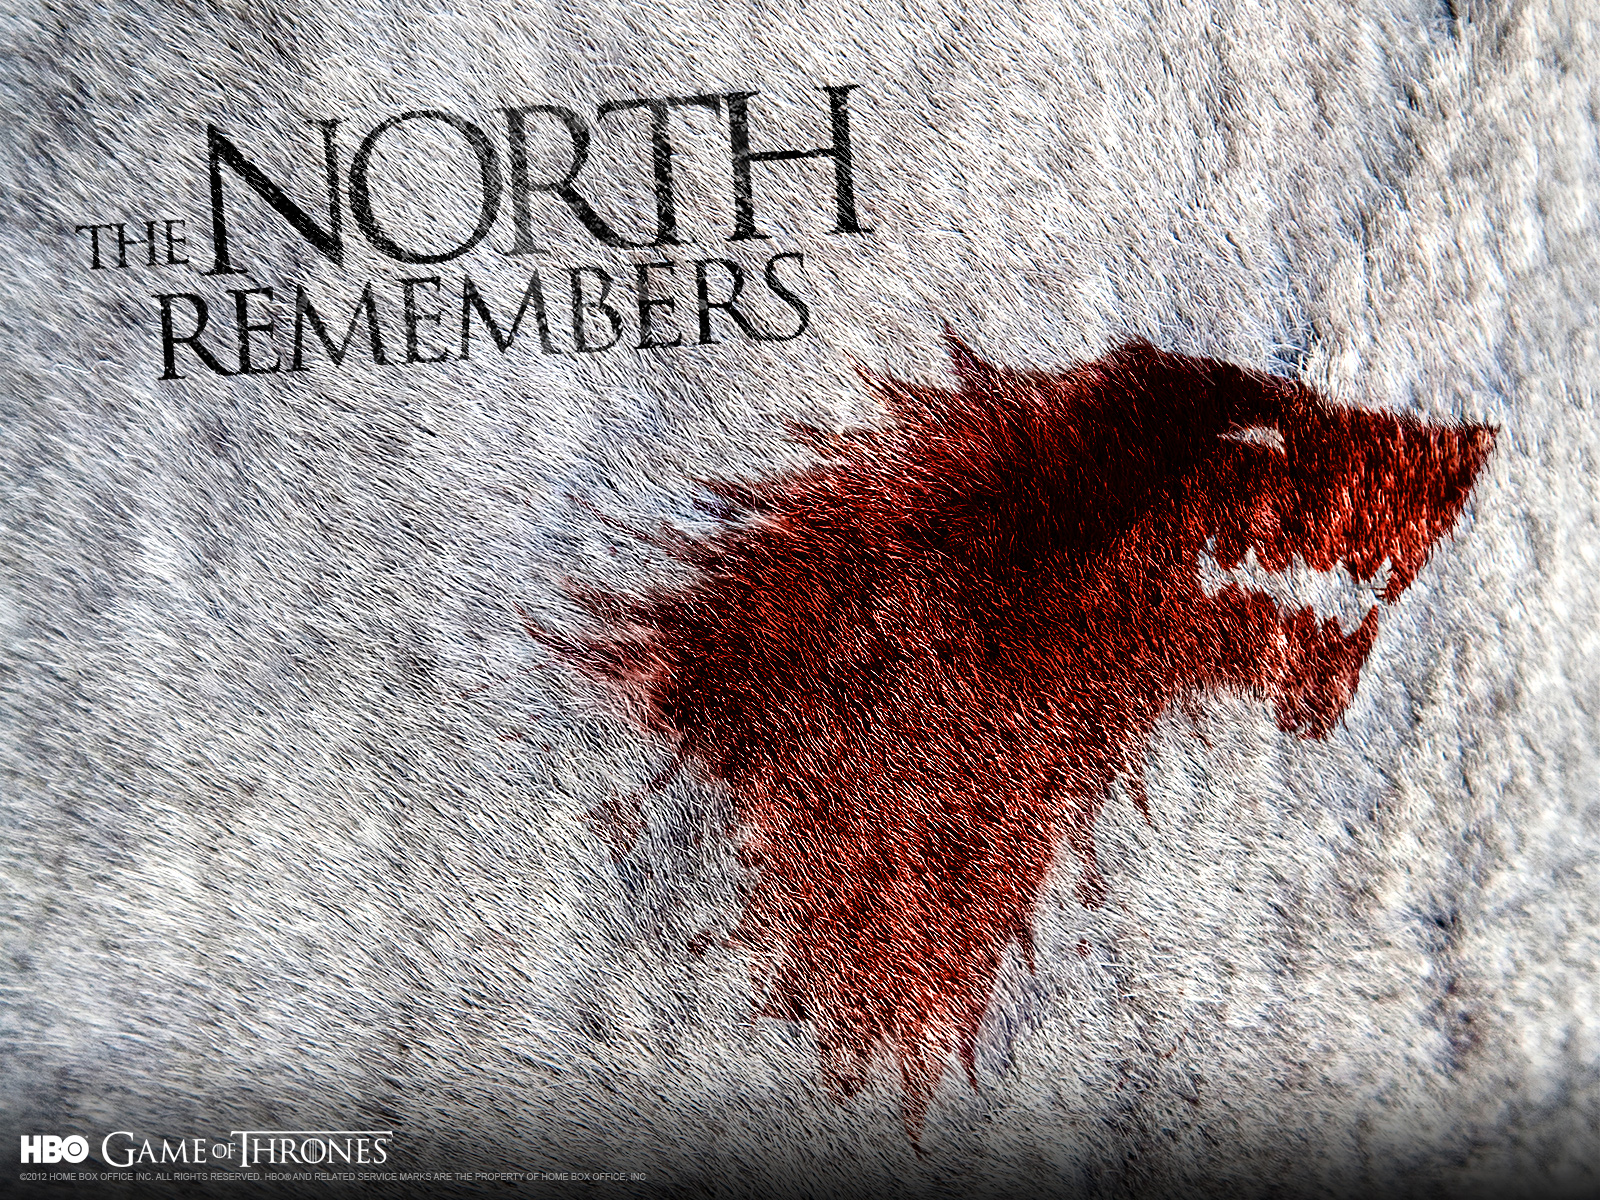 http://4.bp.blogspot.com/-be8KPfLTXXg/T3U5OsL2VZI/AAAAAAAABtg/gB3yErIFD9M/s1600/the-north-remembers-wallpaper-1600.jpg